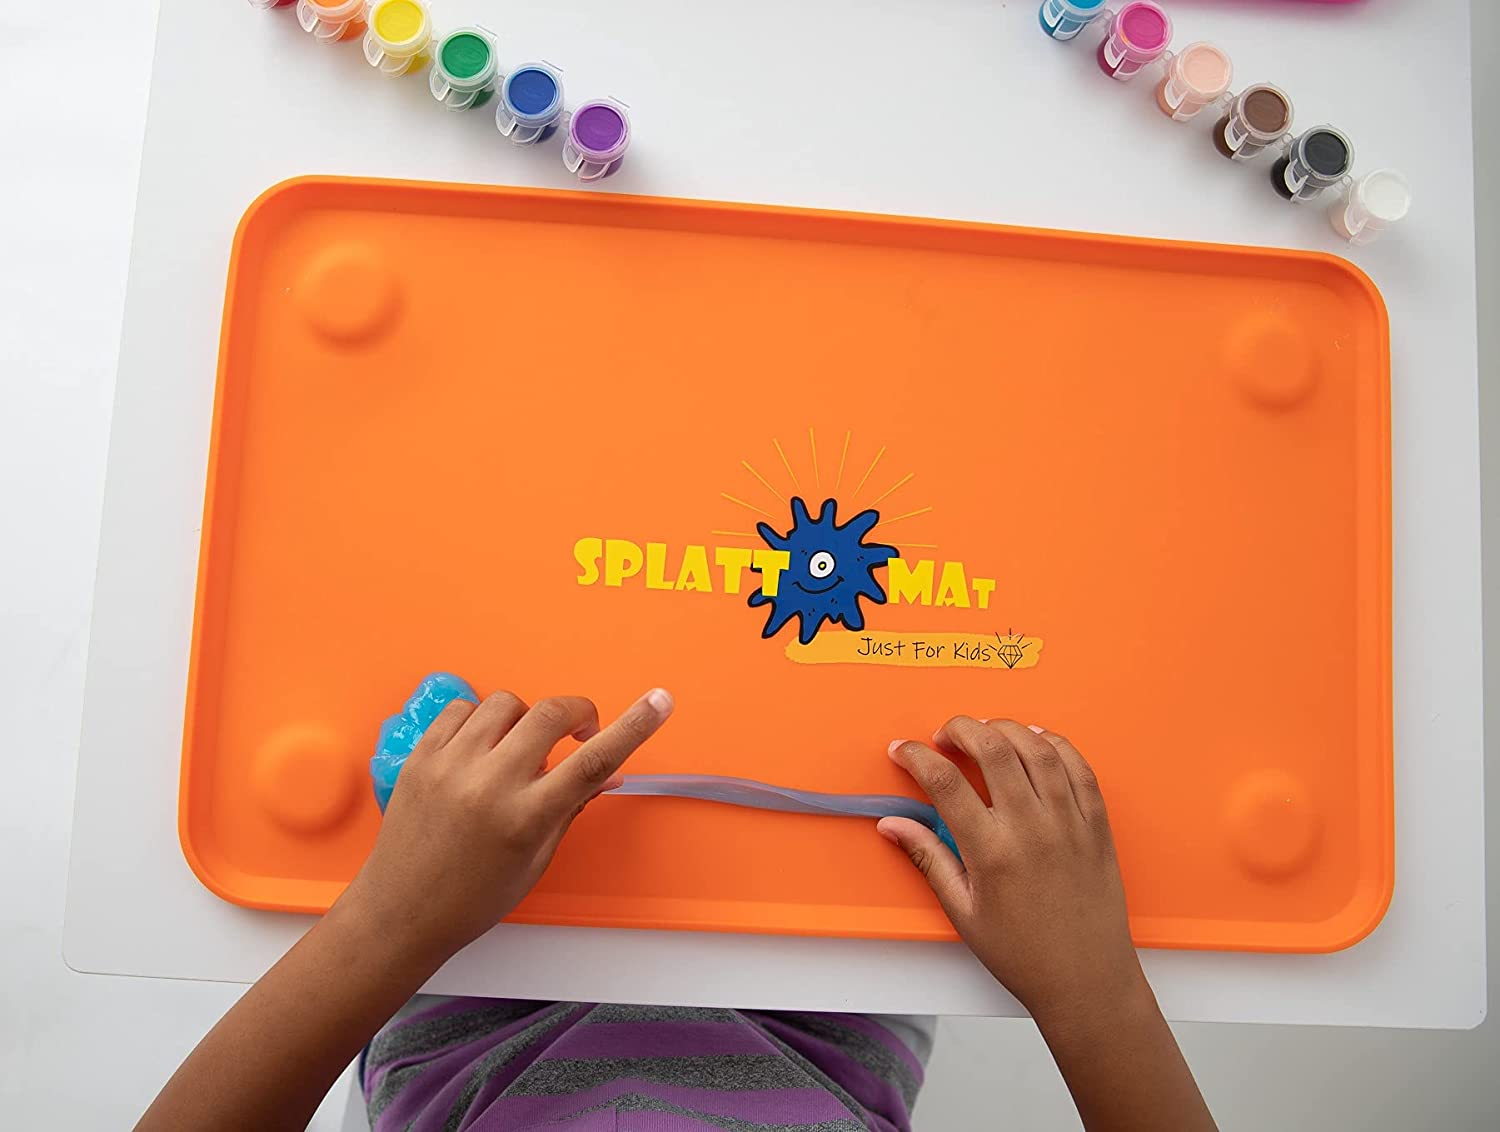 Splattmat  Large Silicone Baby & Kid Suctioned Placemat – New All Ages Sensory Splat Mat  Arts & Crafts  Travel Rings Included